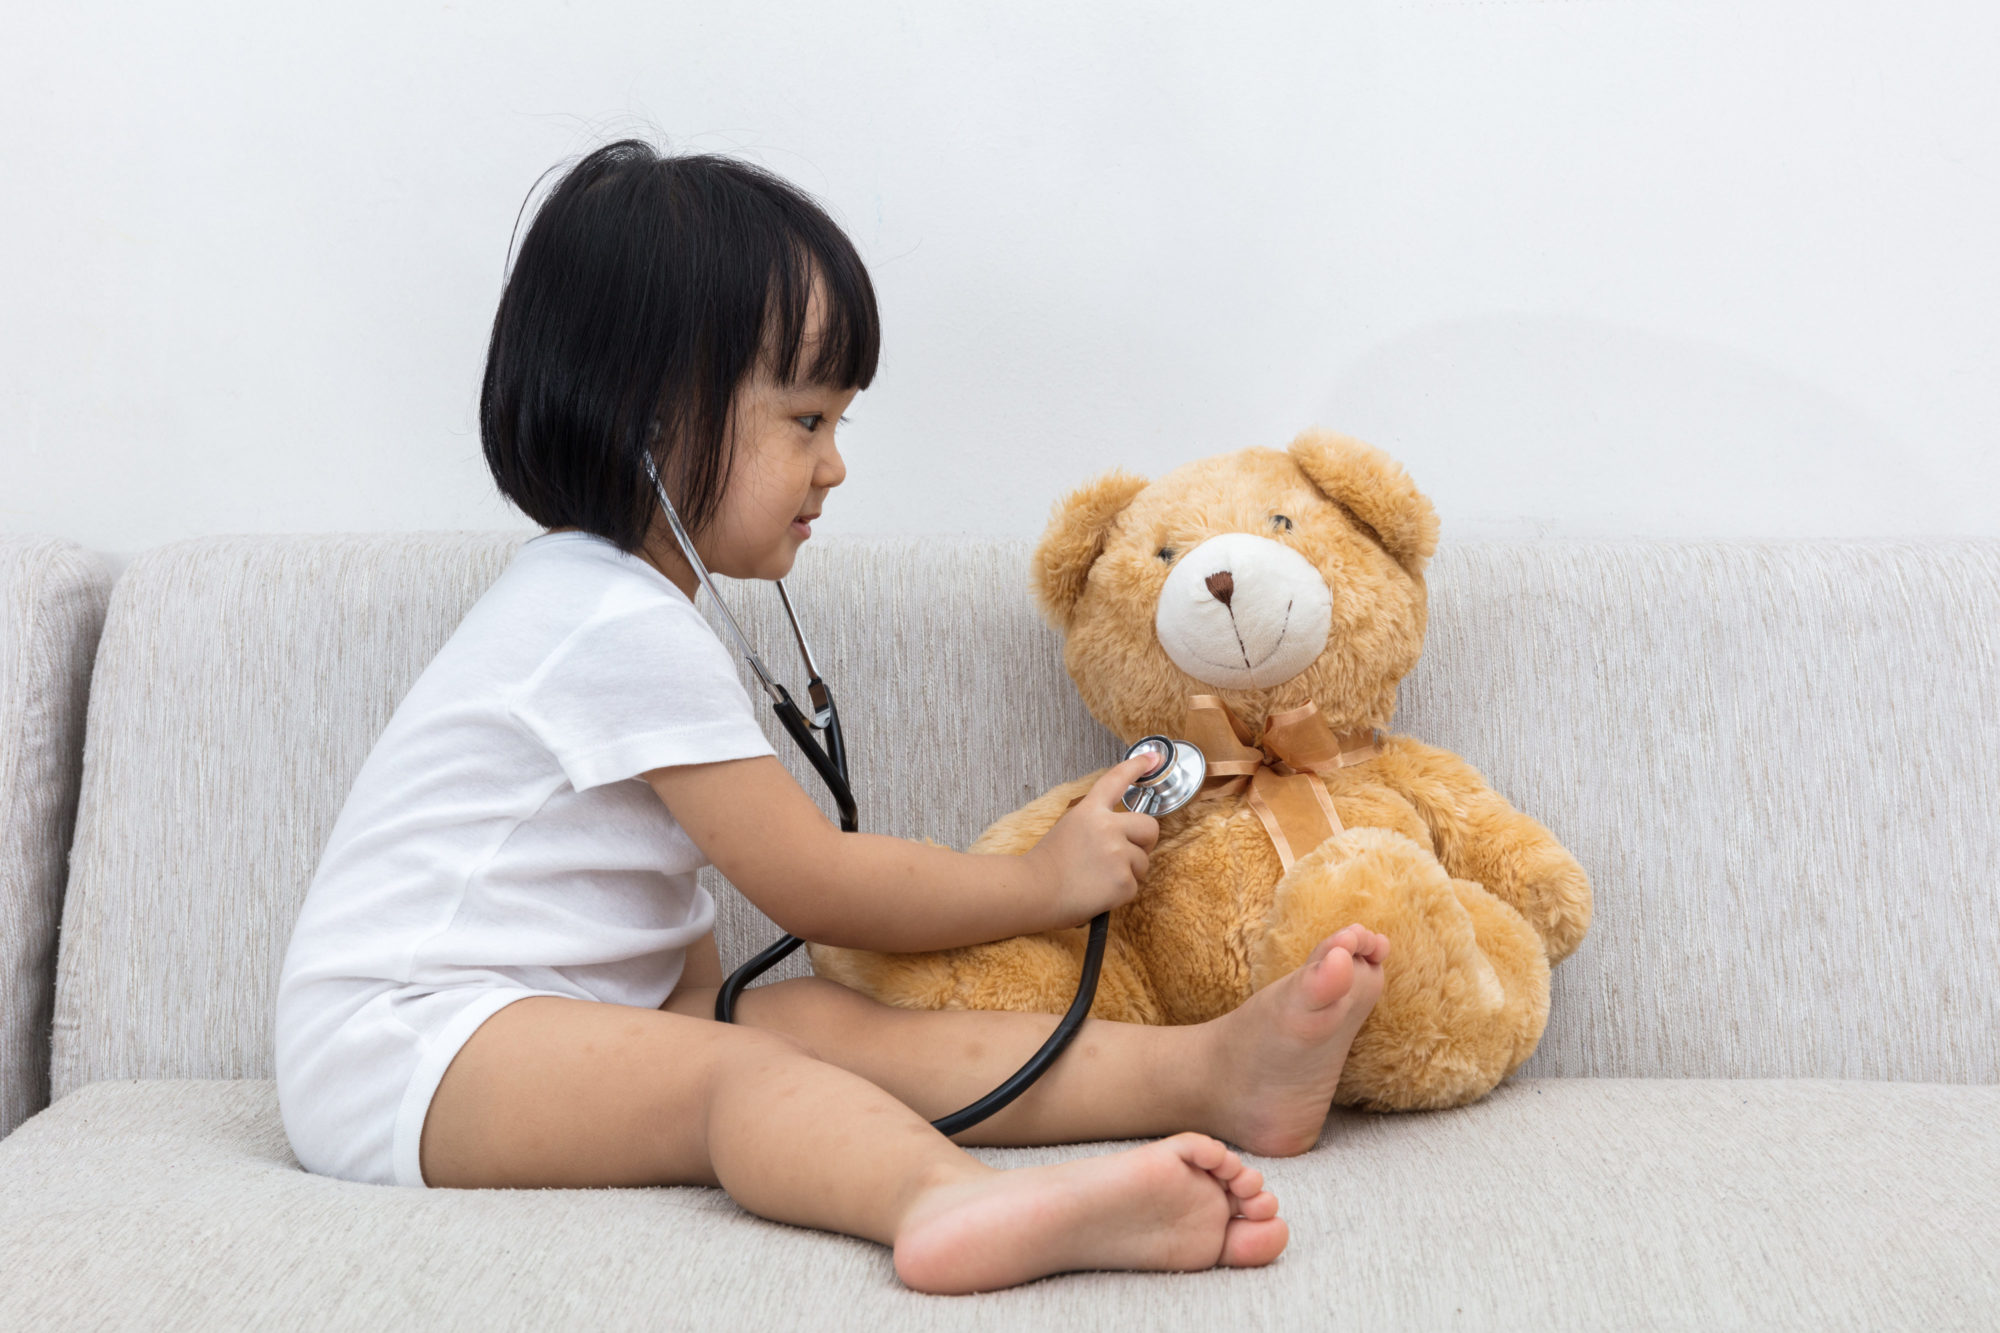 Child checking on Teddy Bear